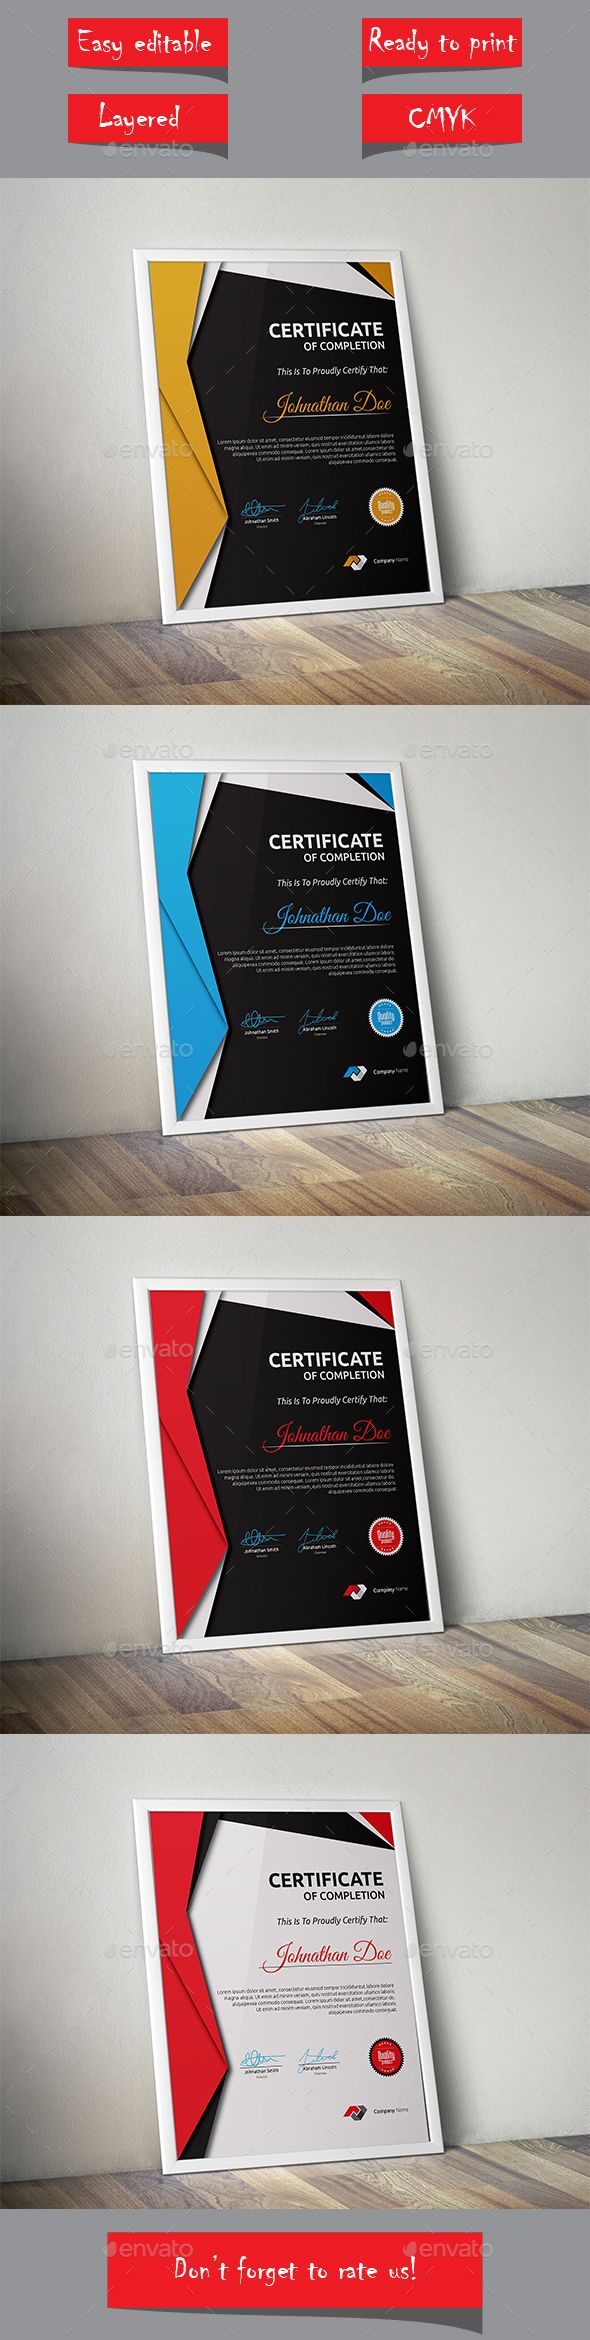 Certificate Template Vector EPS. Download here: http://graphicriver.net/item/certificate/13579072?ref=ksioks